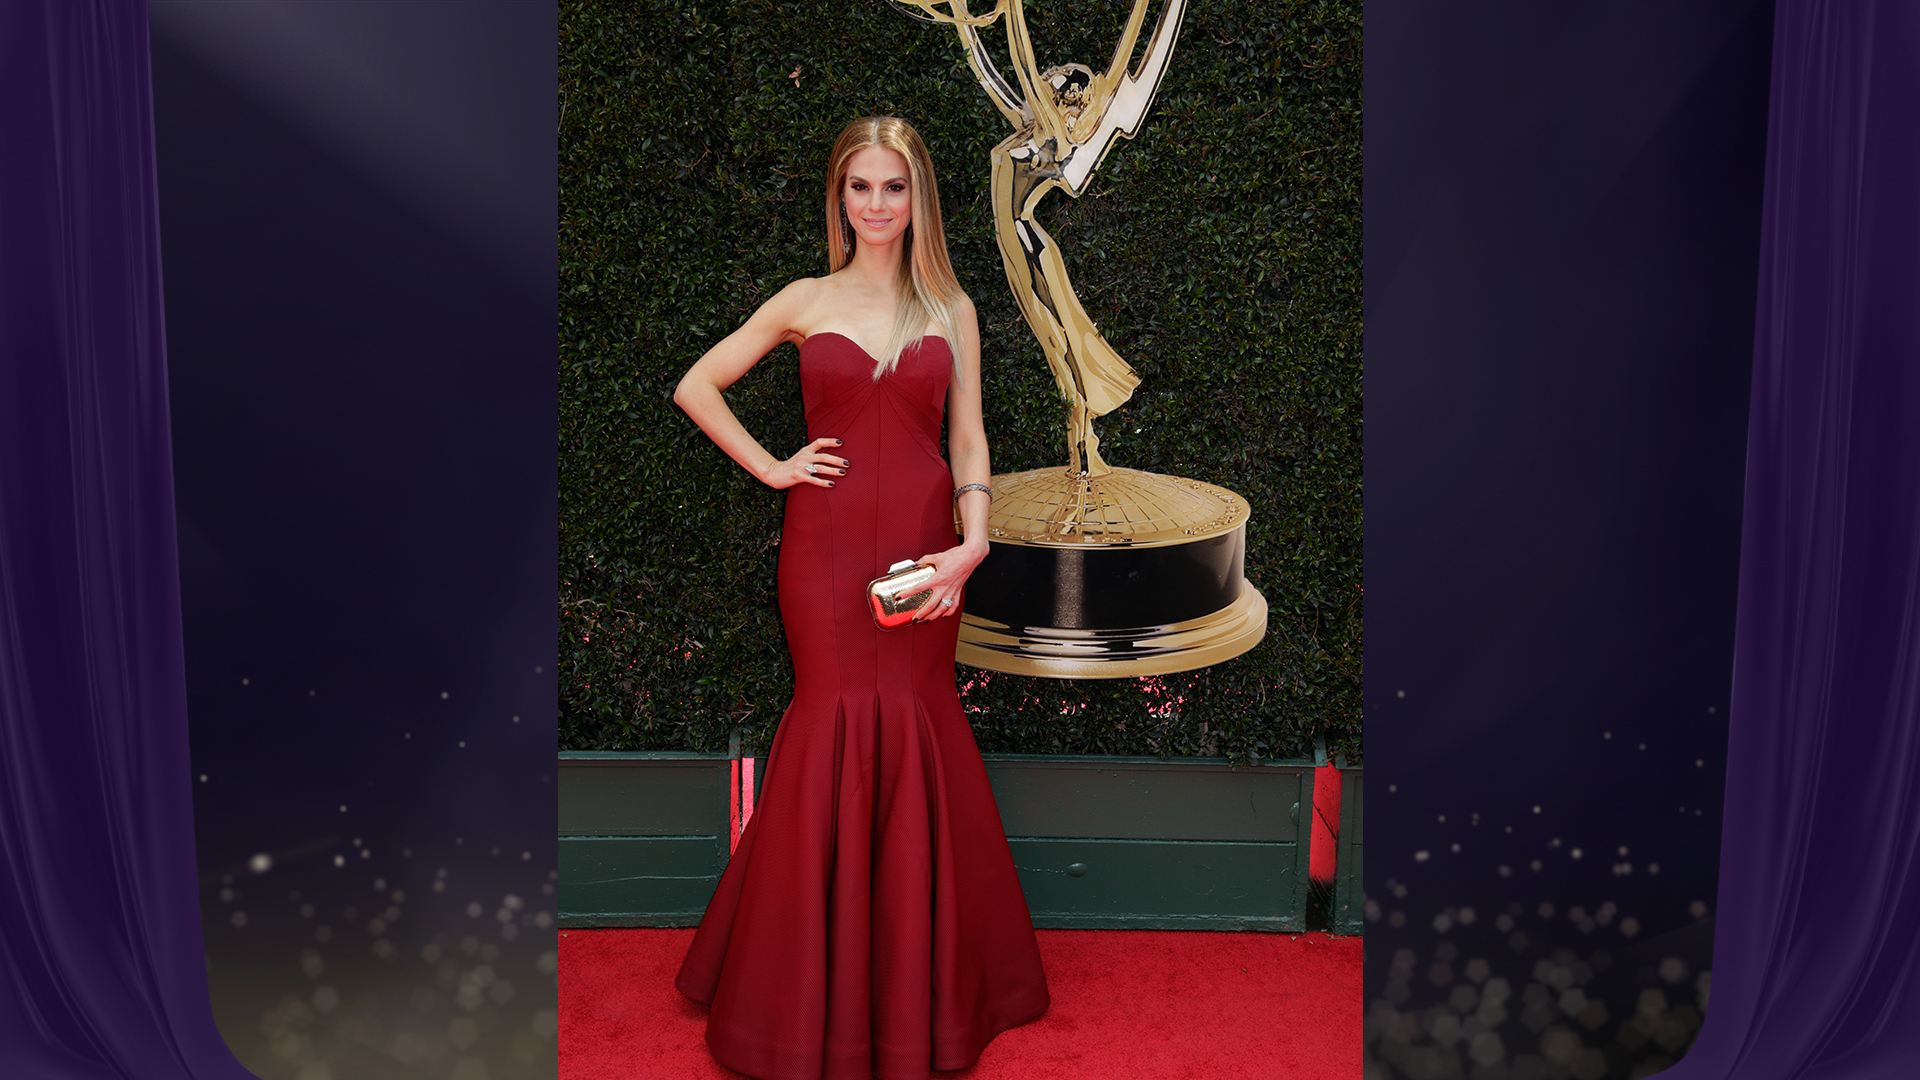 CBS Daytime star Kelly Kruger poses in a red strapless trumpet dress with a shiny gold clutch.